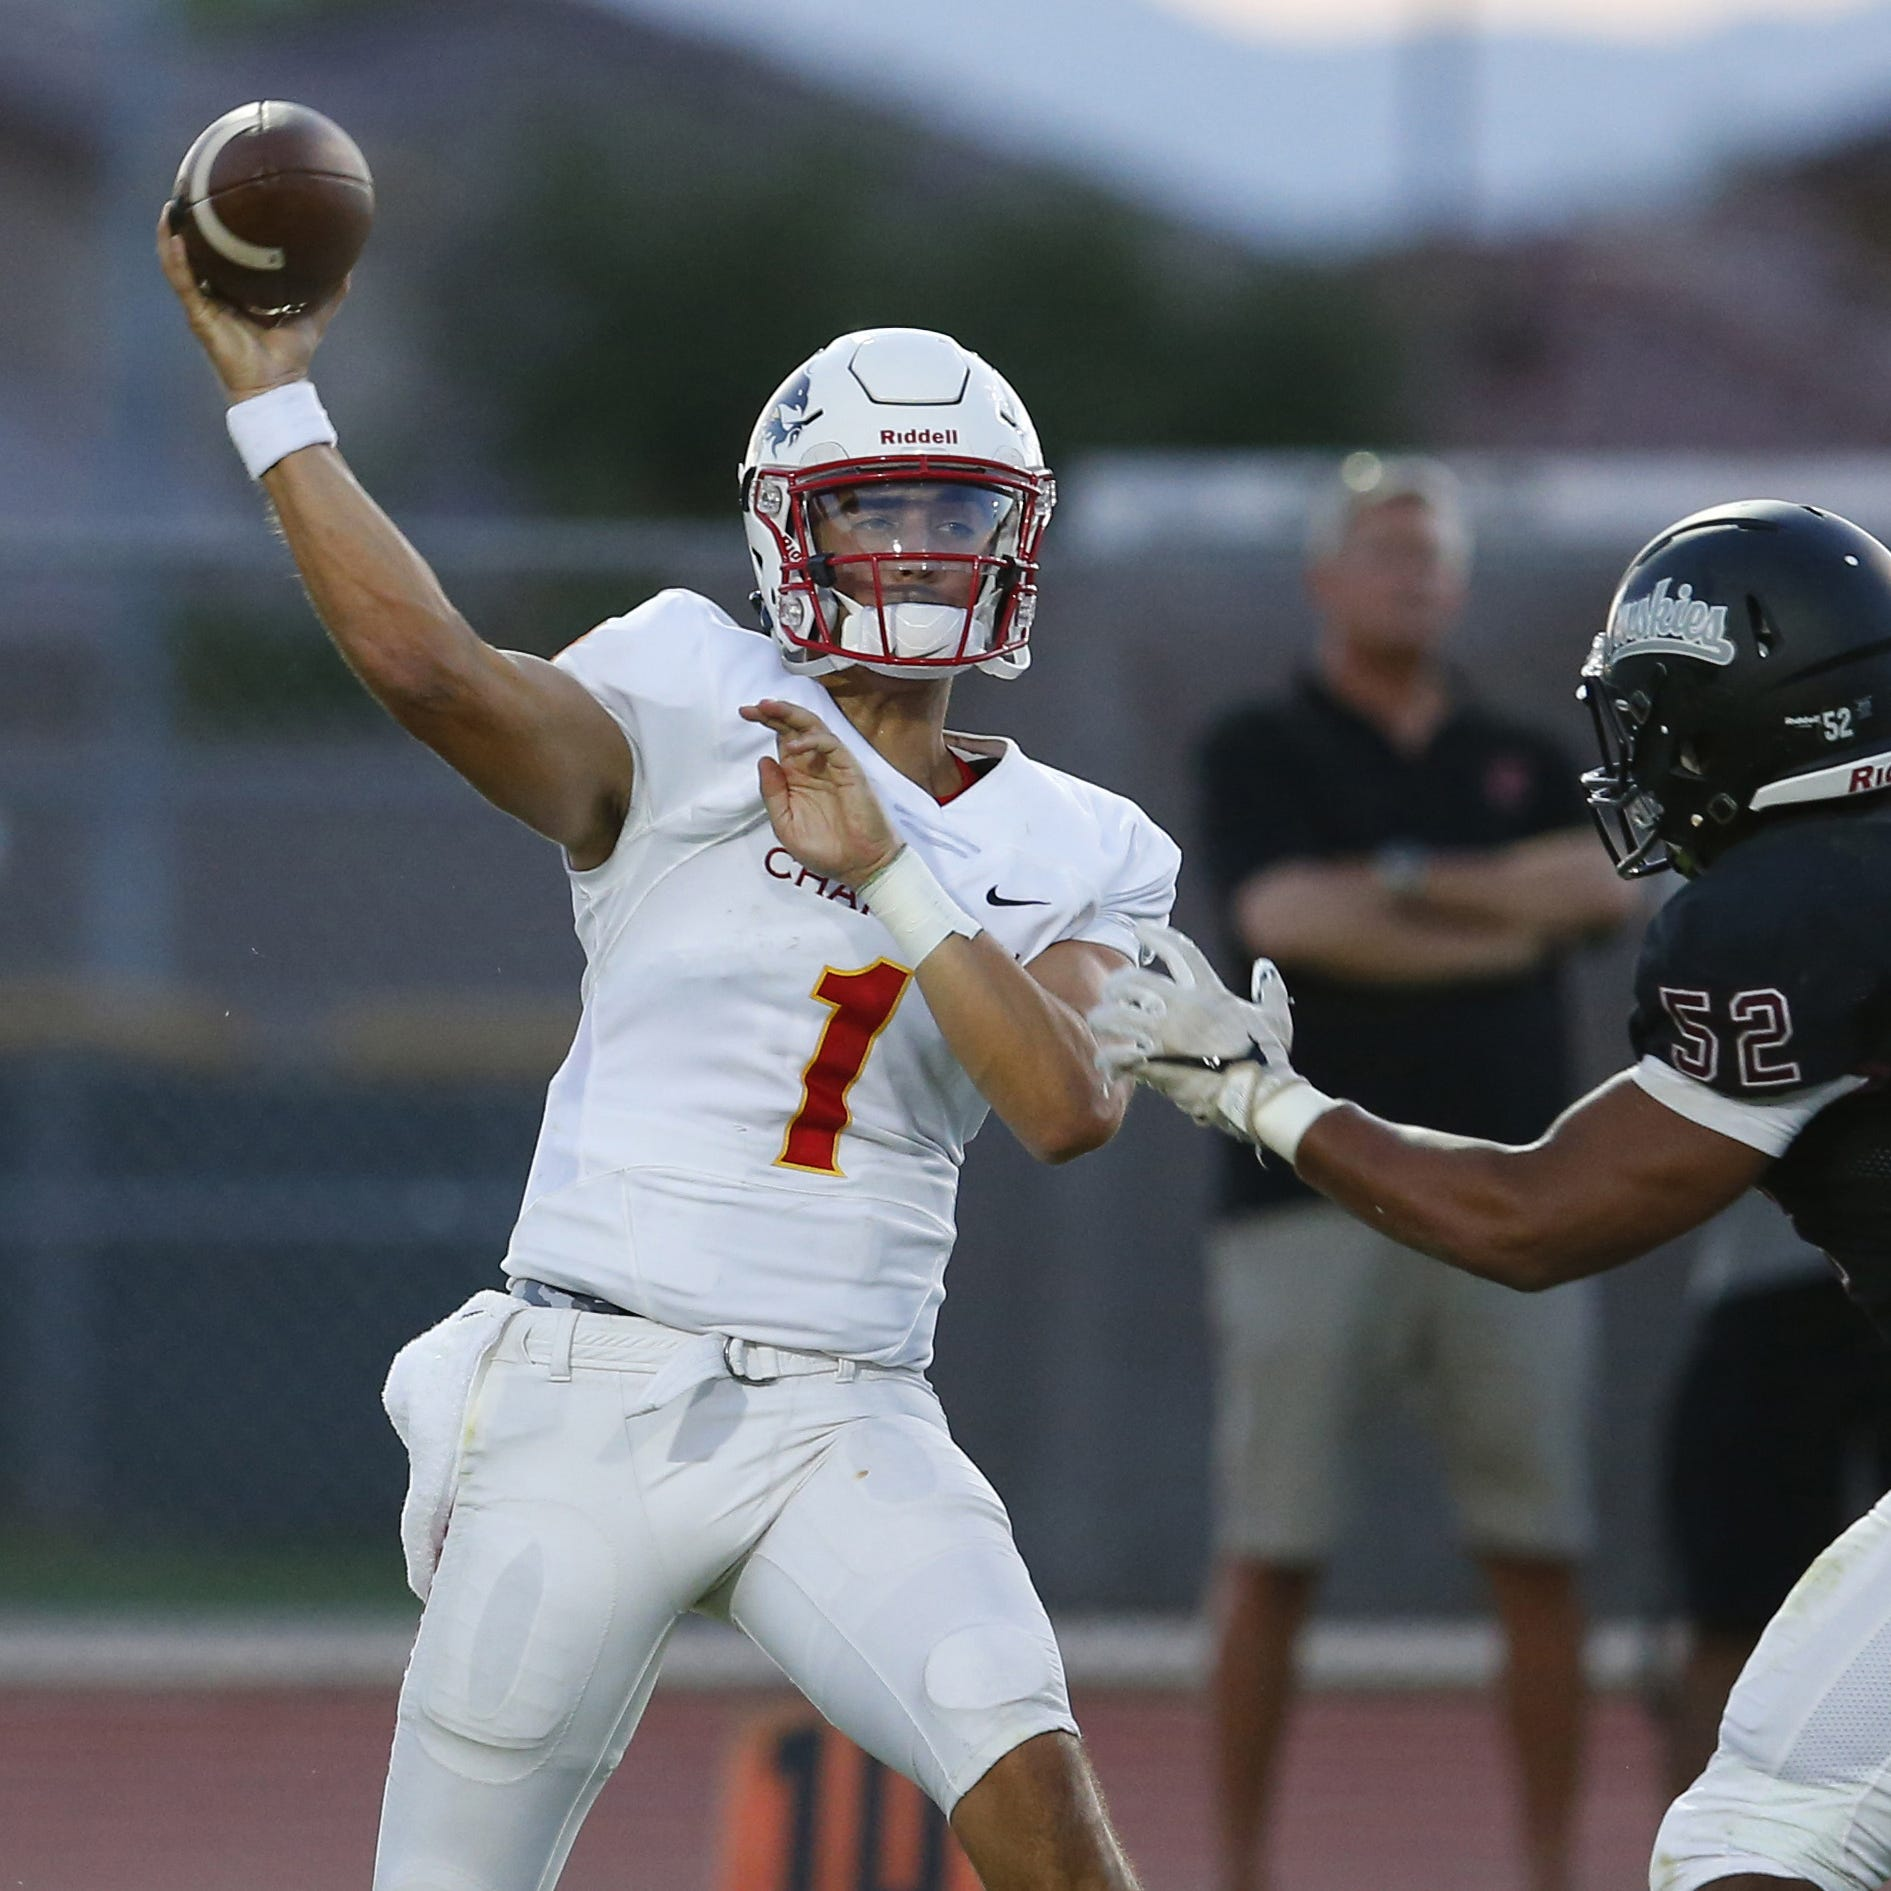 Vote for the top high school football performance from Week 1